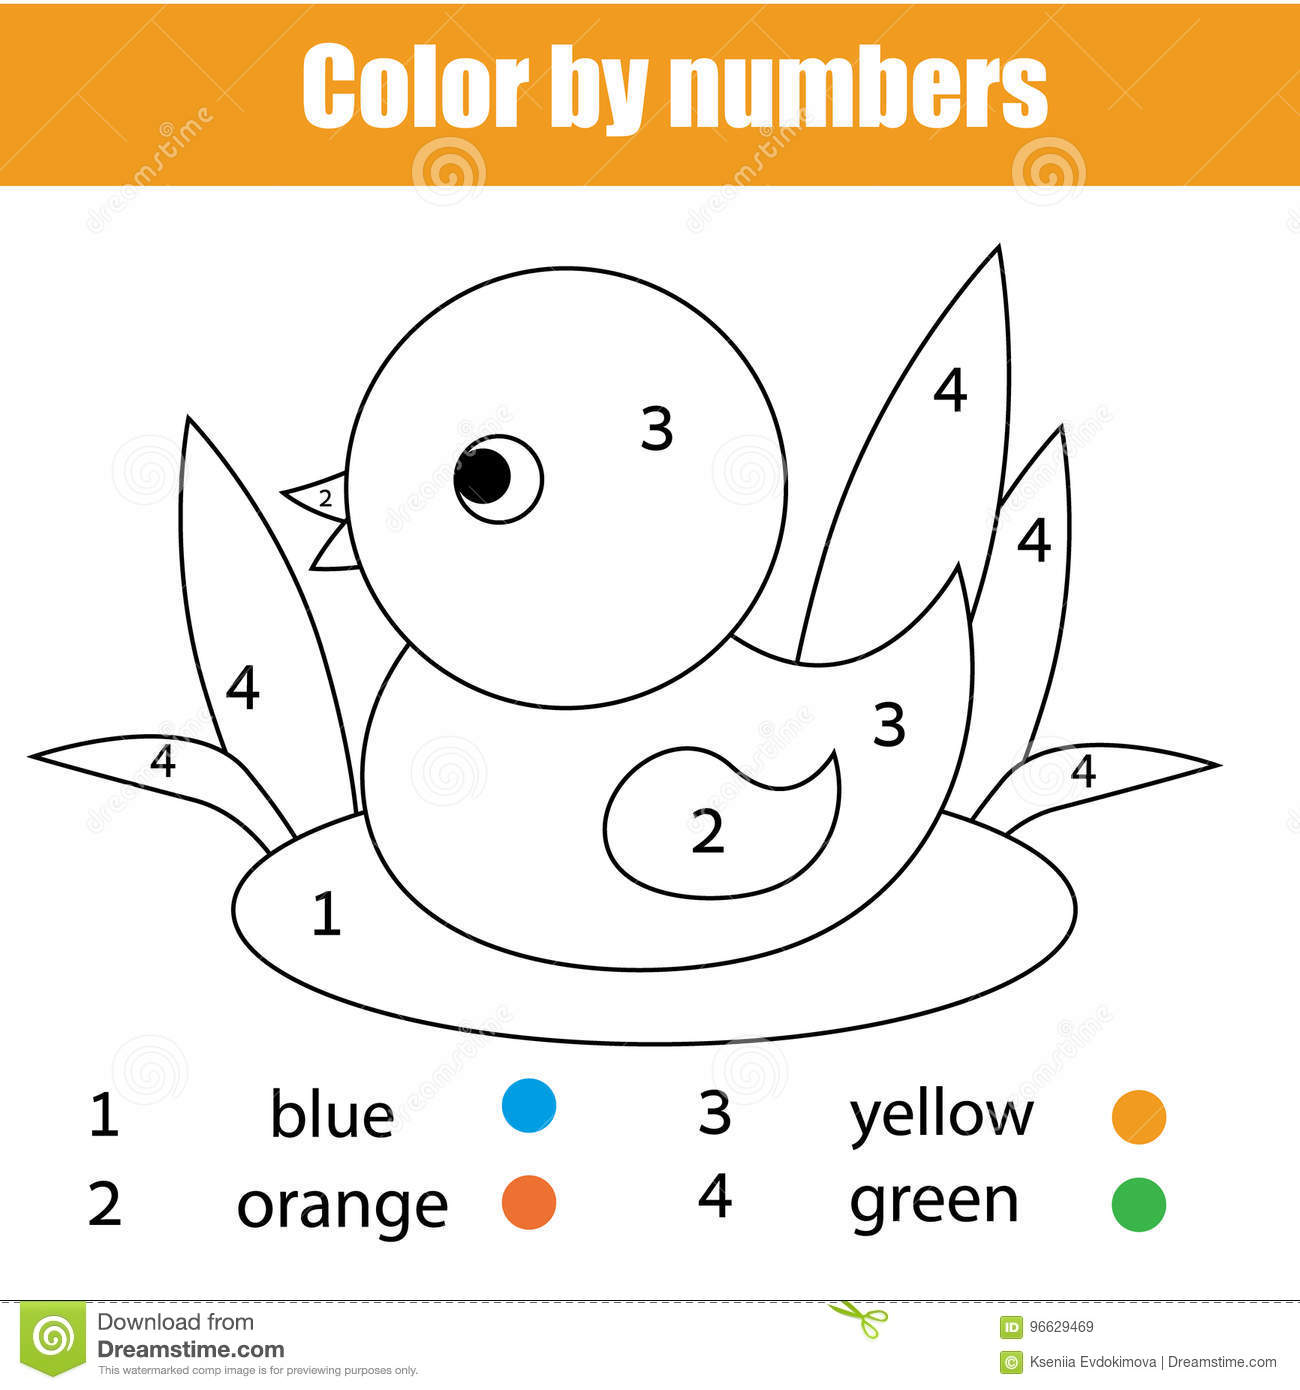 photograph relating to Toddler Learning Activities Printable Free identify Coloring Web page With Duck Chook. Shade Via Figures Useful